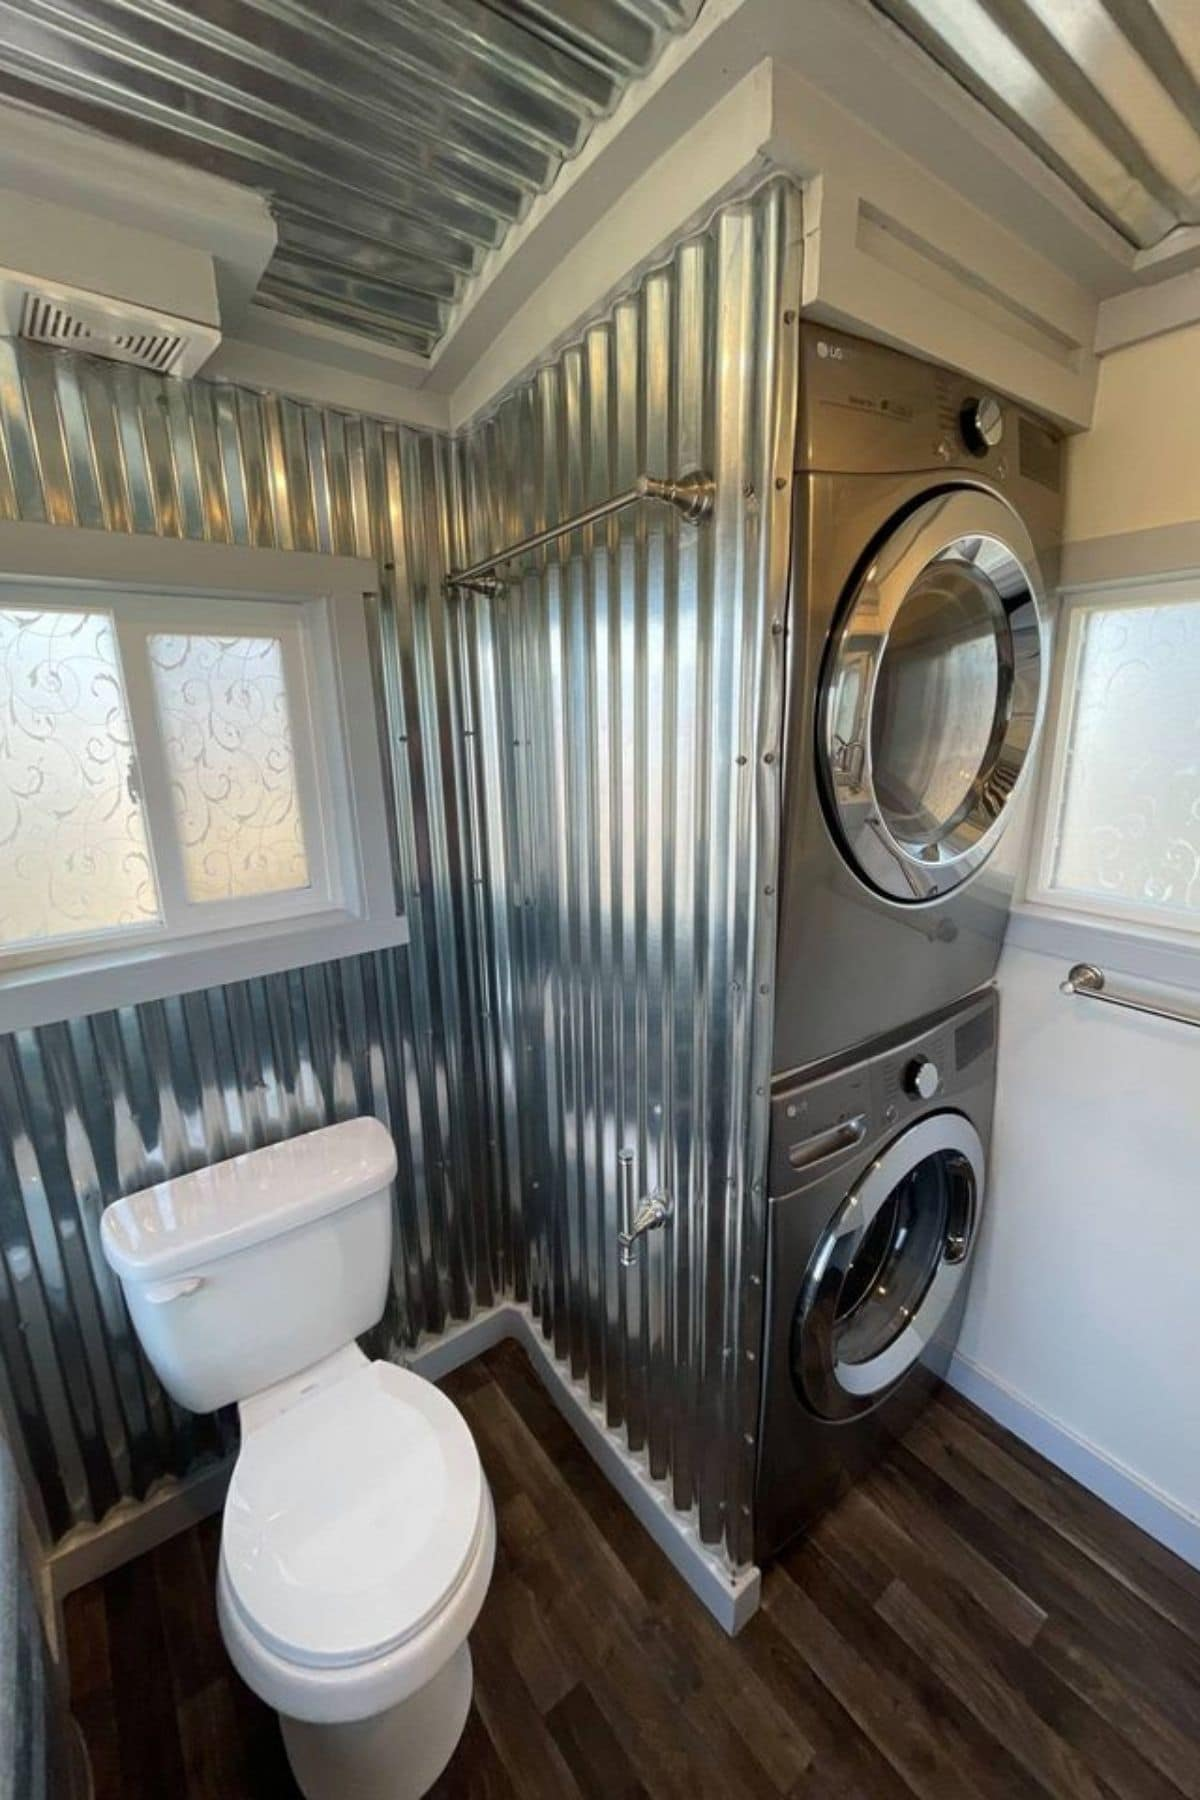 White toilet against metal wall with stainless steel stacking washer and dryer to the side